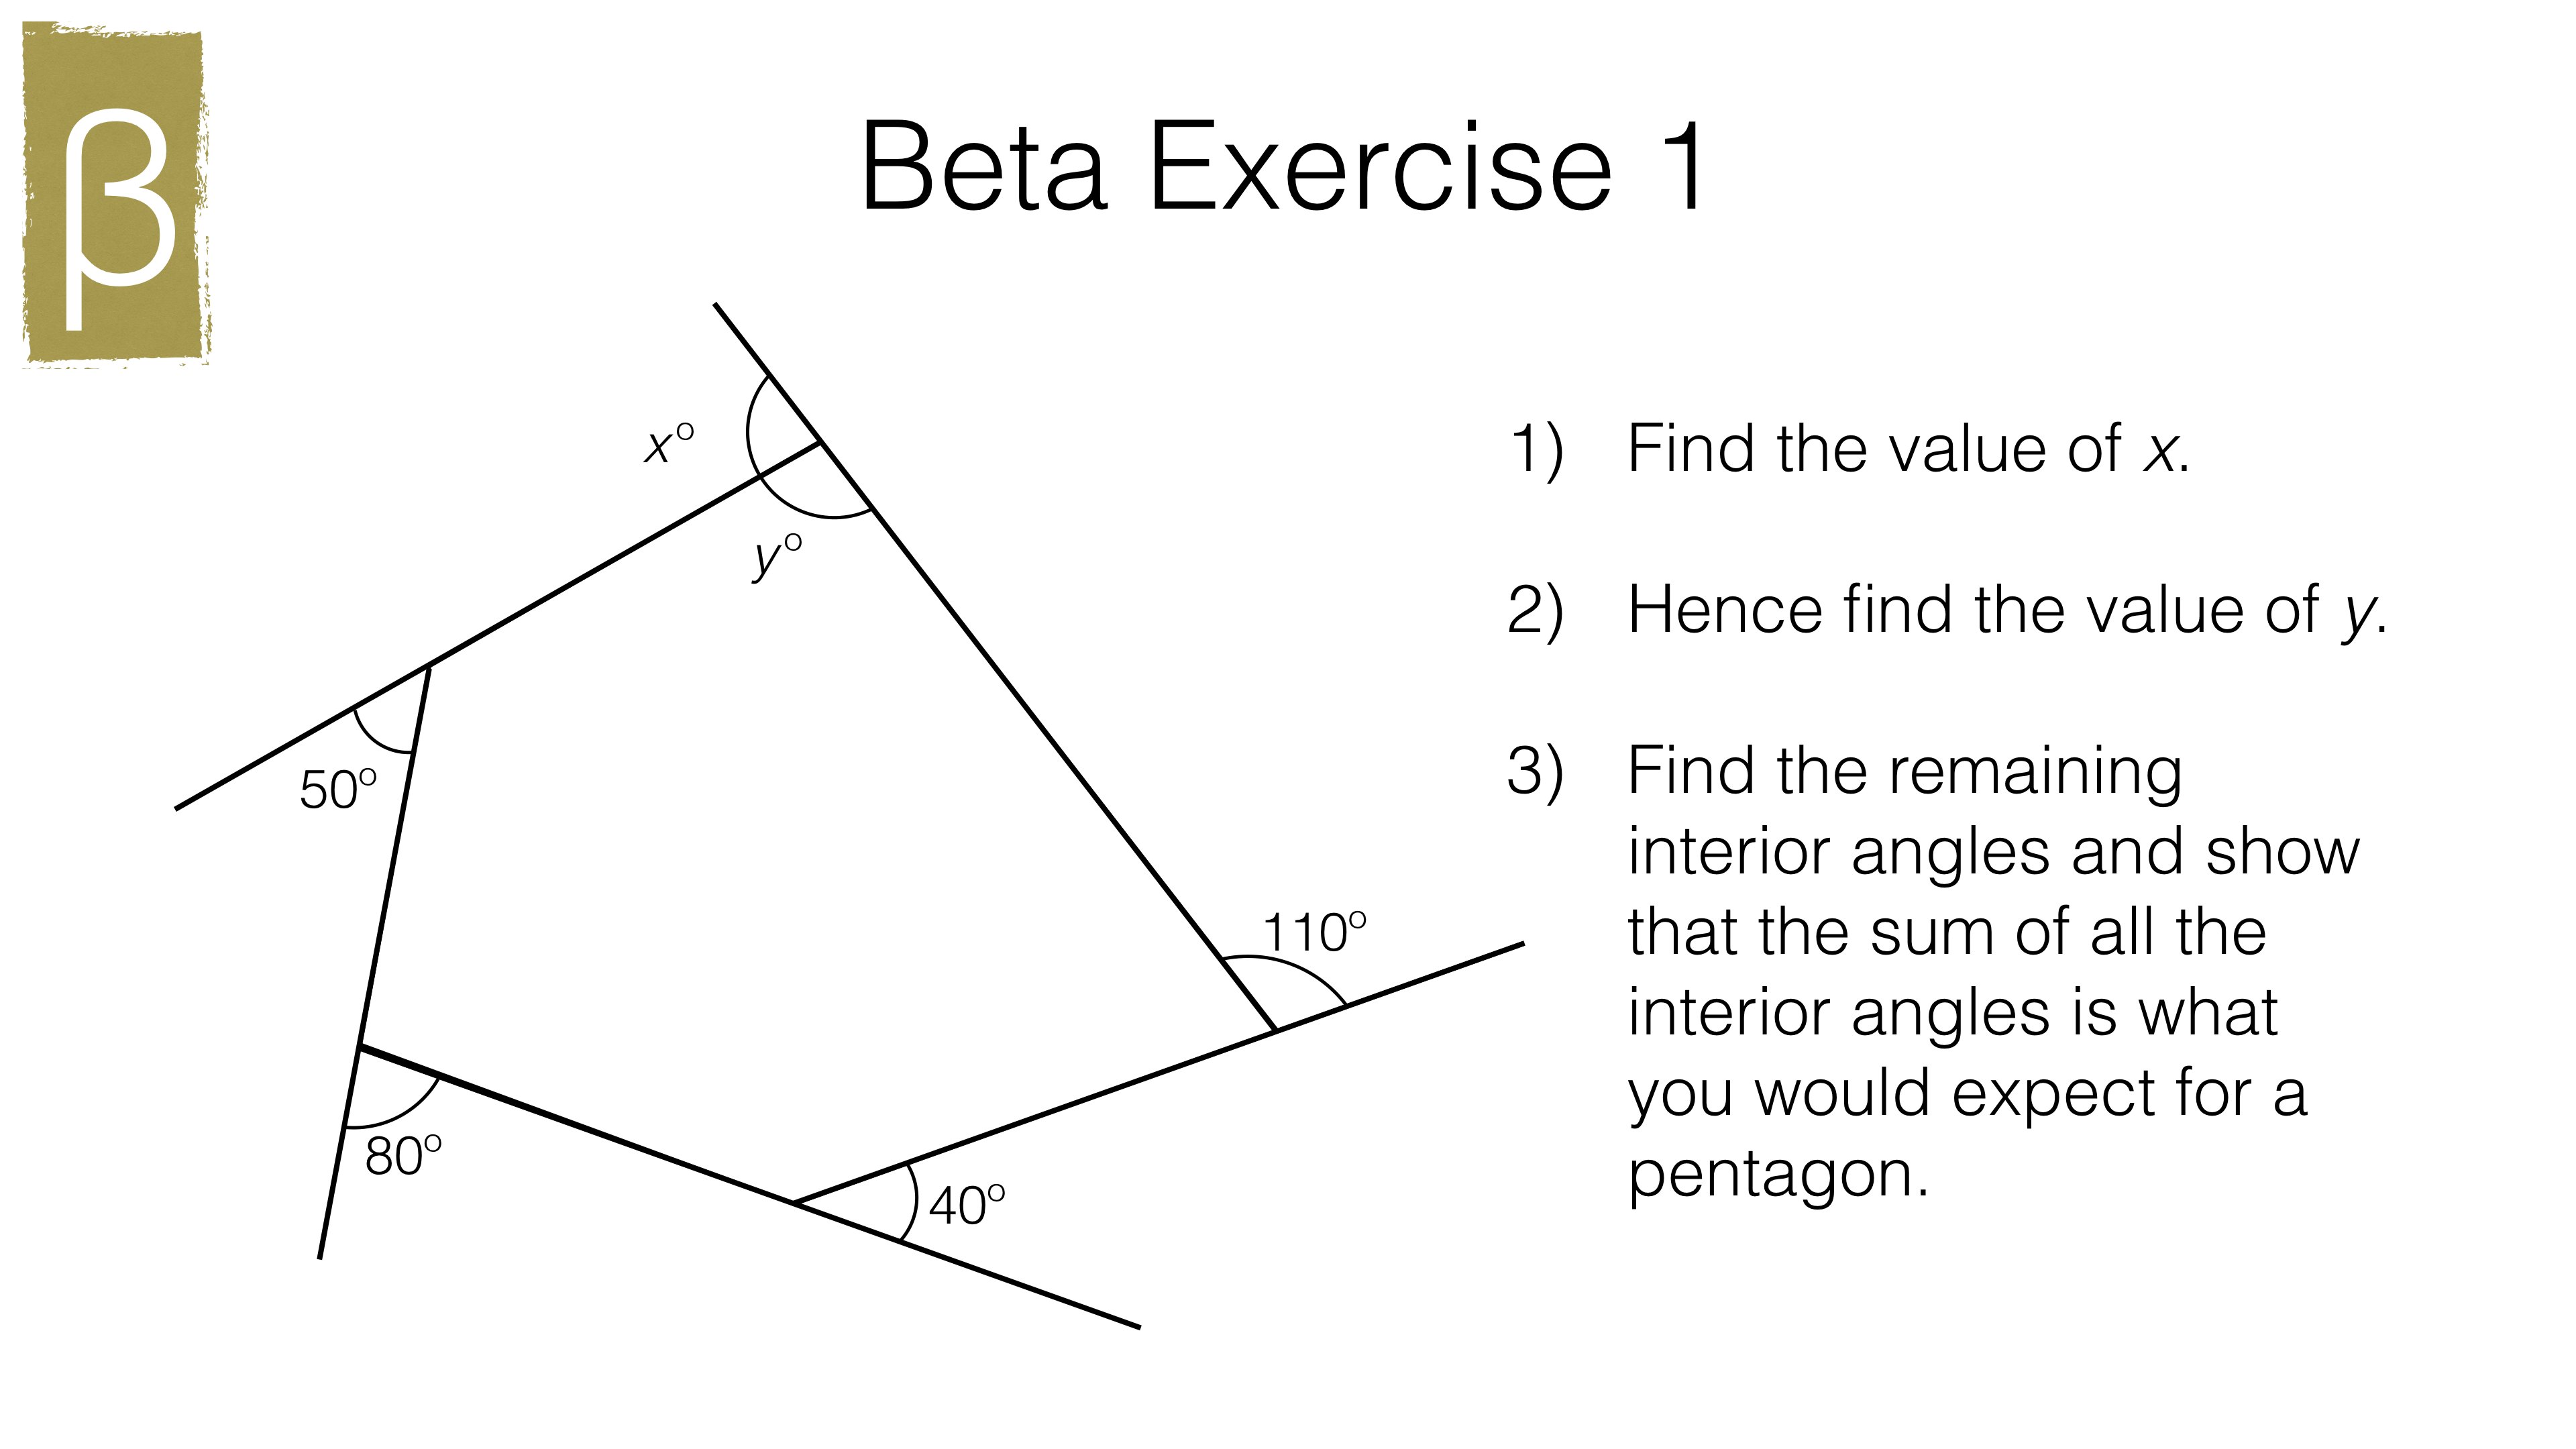 Interior angles of a polygon worksheet further Unit 4 Lesson 2  Angles of a Polygon Worksheet   TpT moreover indoors And exterior Angles Of A Triangle moreover G3c – The sum of angles in a triangle and the angle properties of furthermore  in addition  also Interior angle sum of polygons  incl  crossed   a general likewise  likewise missing angles in polygons worksheet – woiuniversity as well Properties also Angles Of Polygons Worksheets Polygon Math Worksheets Shapes moreover Angles In Polygons Worksheet   Mychaume together with Sum Of Interior Angles Of Polygons Worksheet   valoblogi further Interior and Exterior Angles of Polygons by clairelogan100 likewise Ideas Collection 12 Alternate Interior Angles Worksheet Also furthermore interior angle of polygon math – mcalive club. on interior angles of polygons worksheet